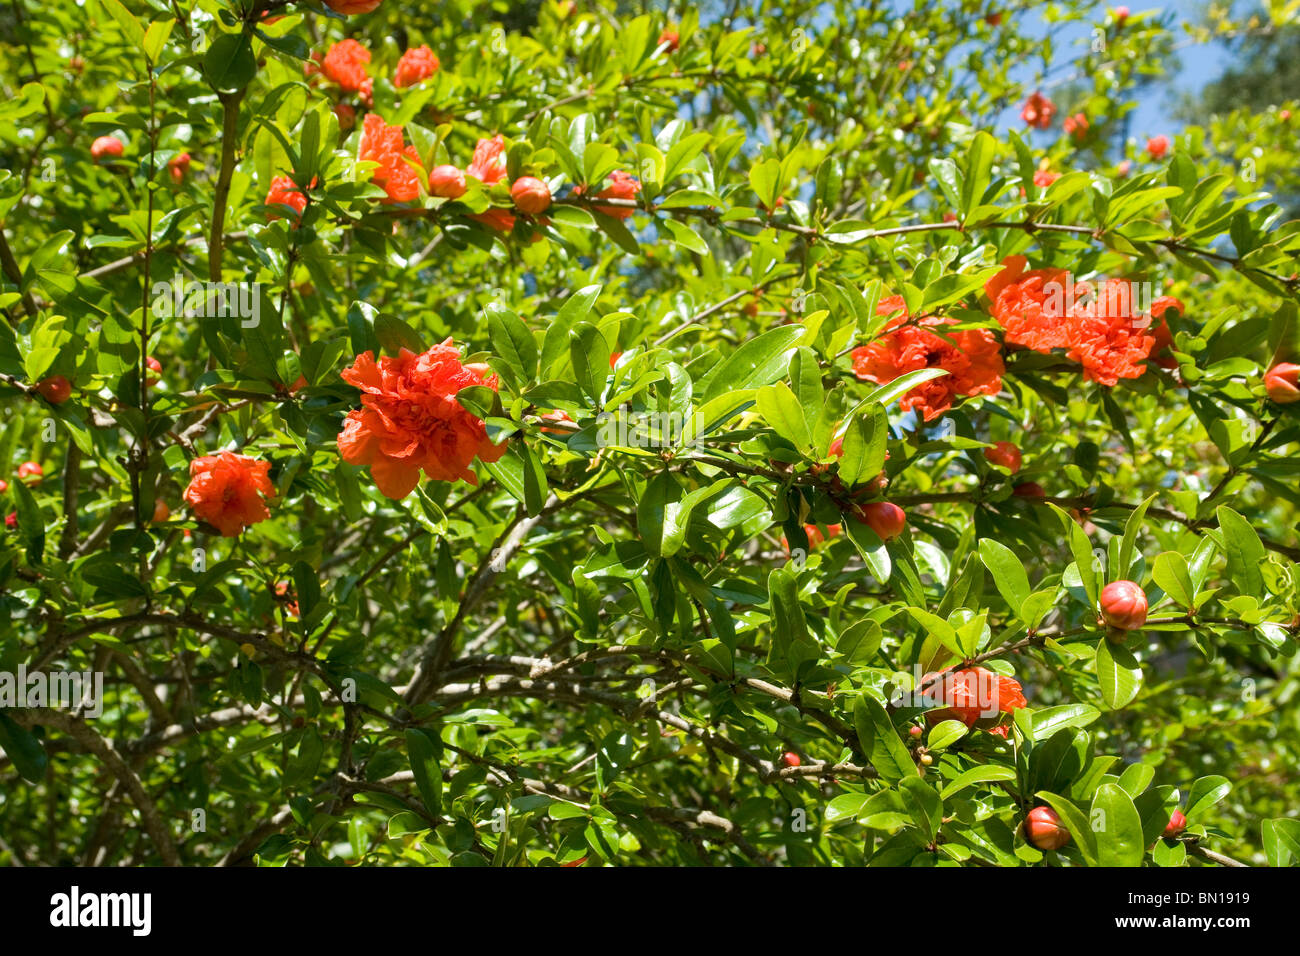 Flowers of a Pomegranate tree (Punica granatum). Fleurs de grenadier (Punica granatum). - Stock Image